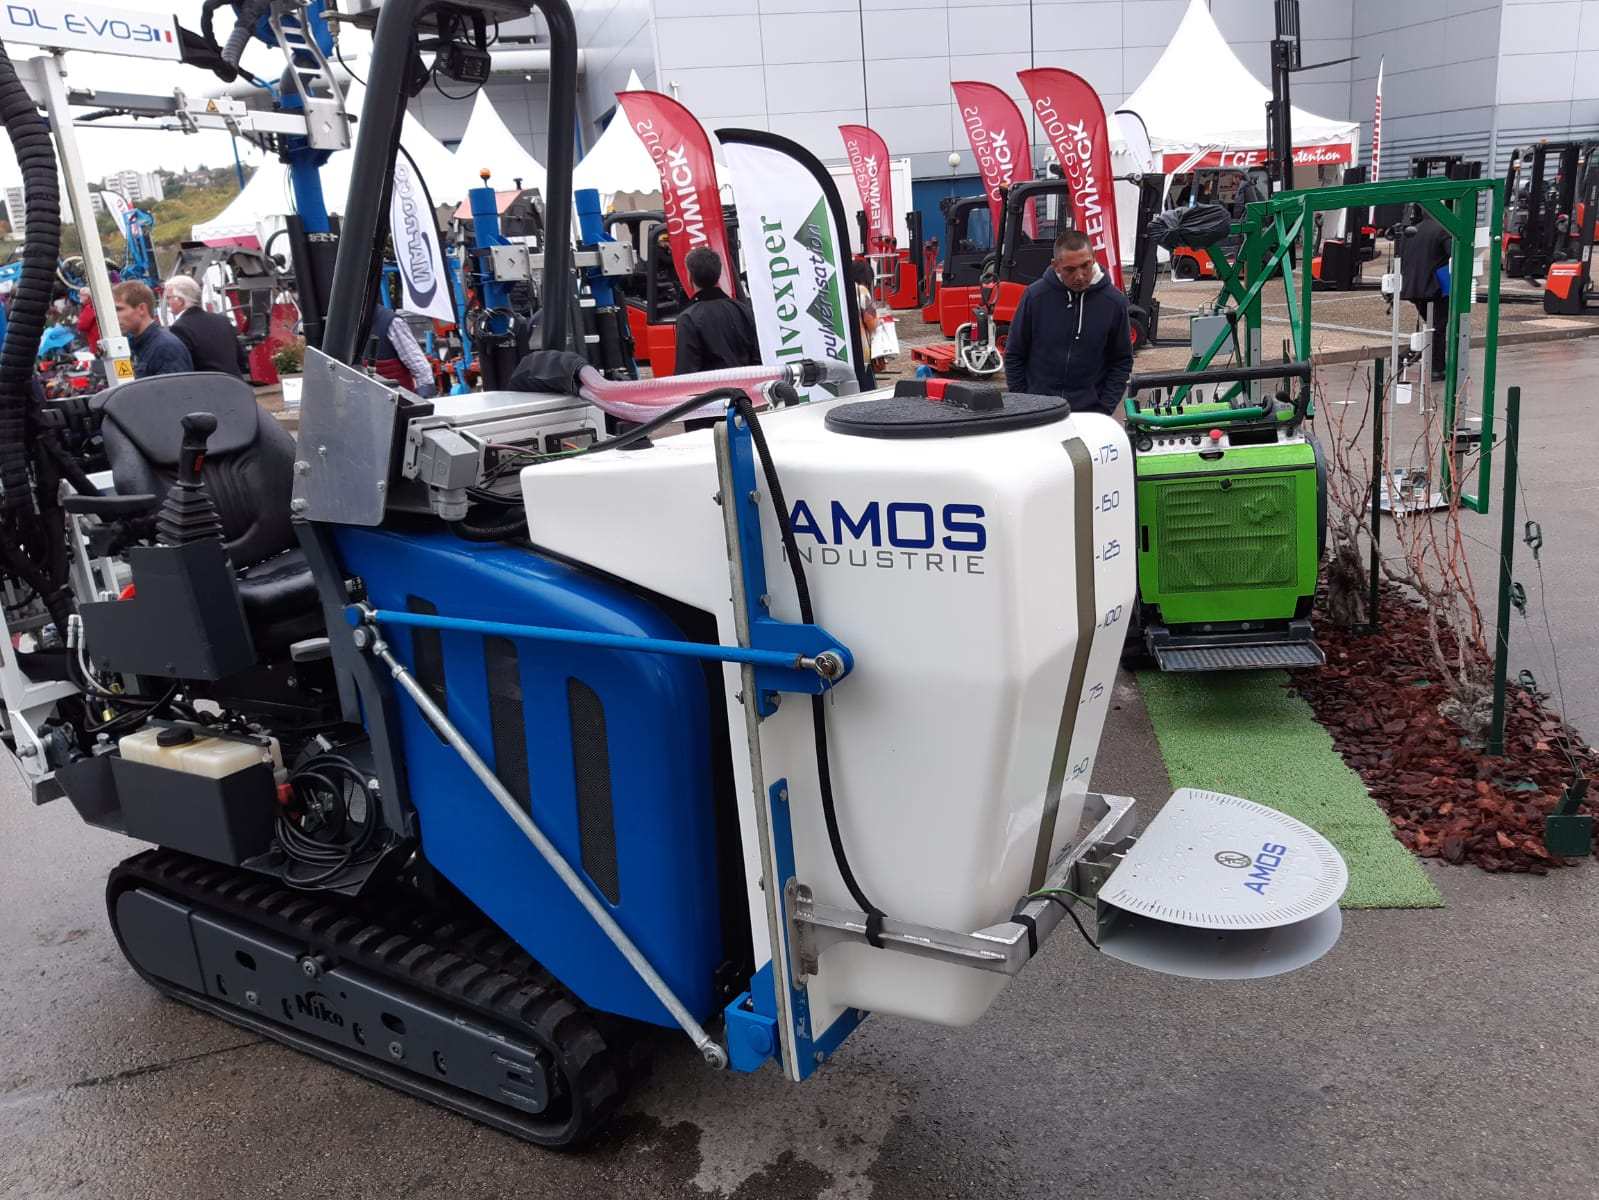 (Partially) autonomous systems like the sprayer seen here are another step in smart farming.